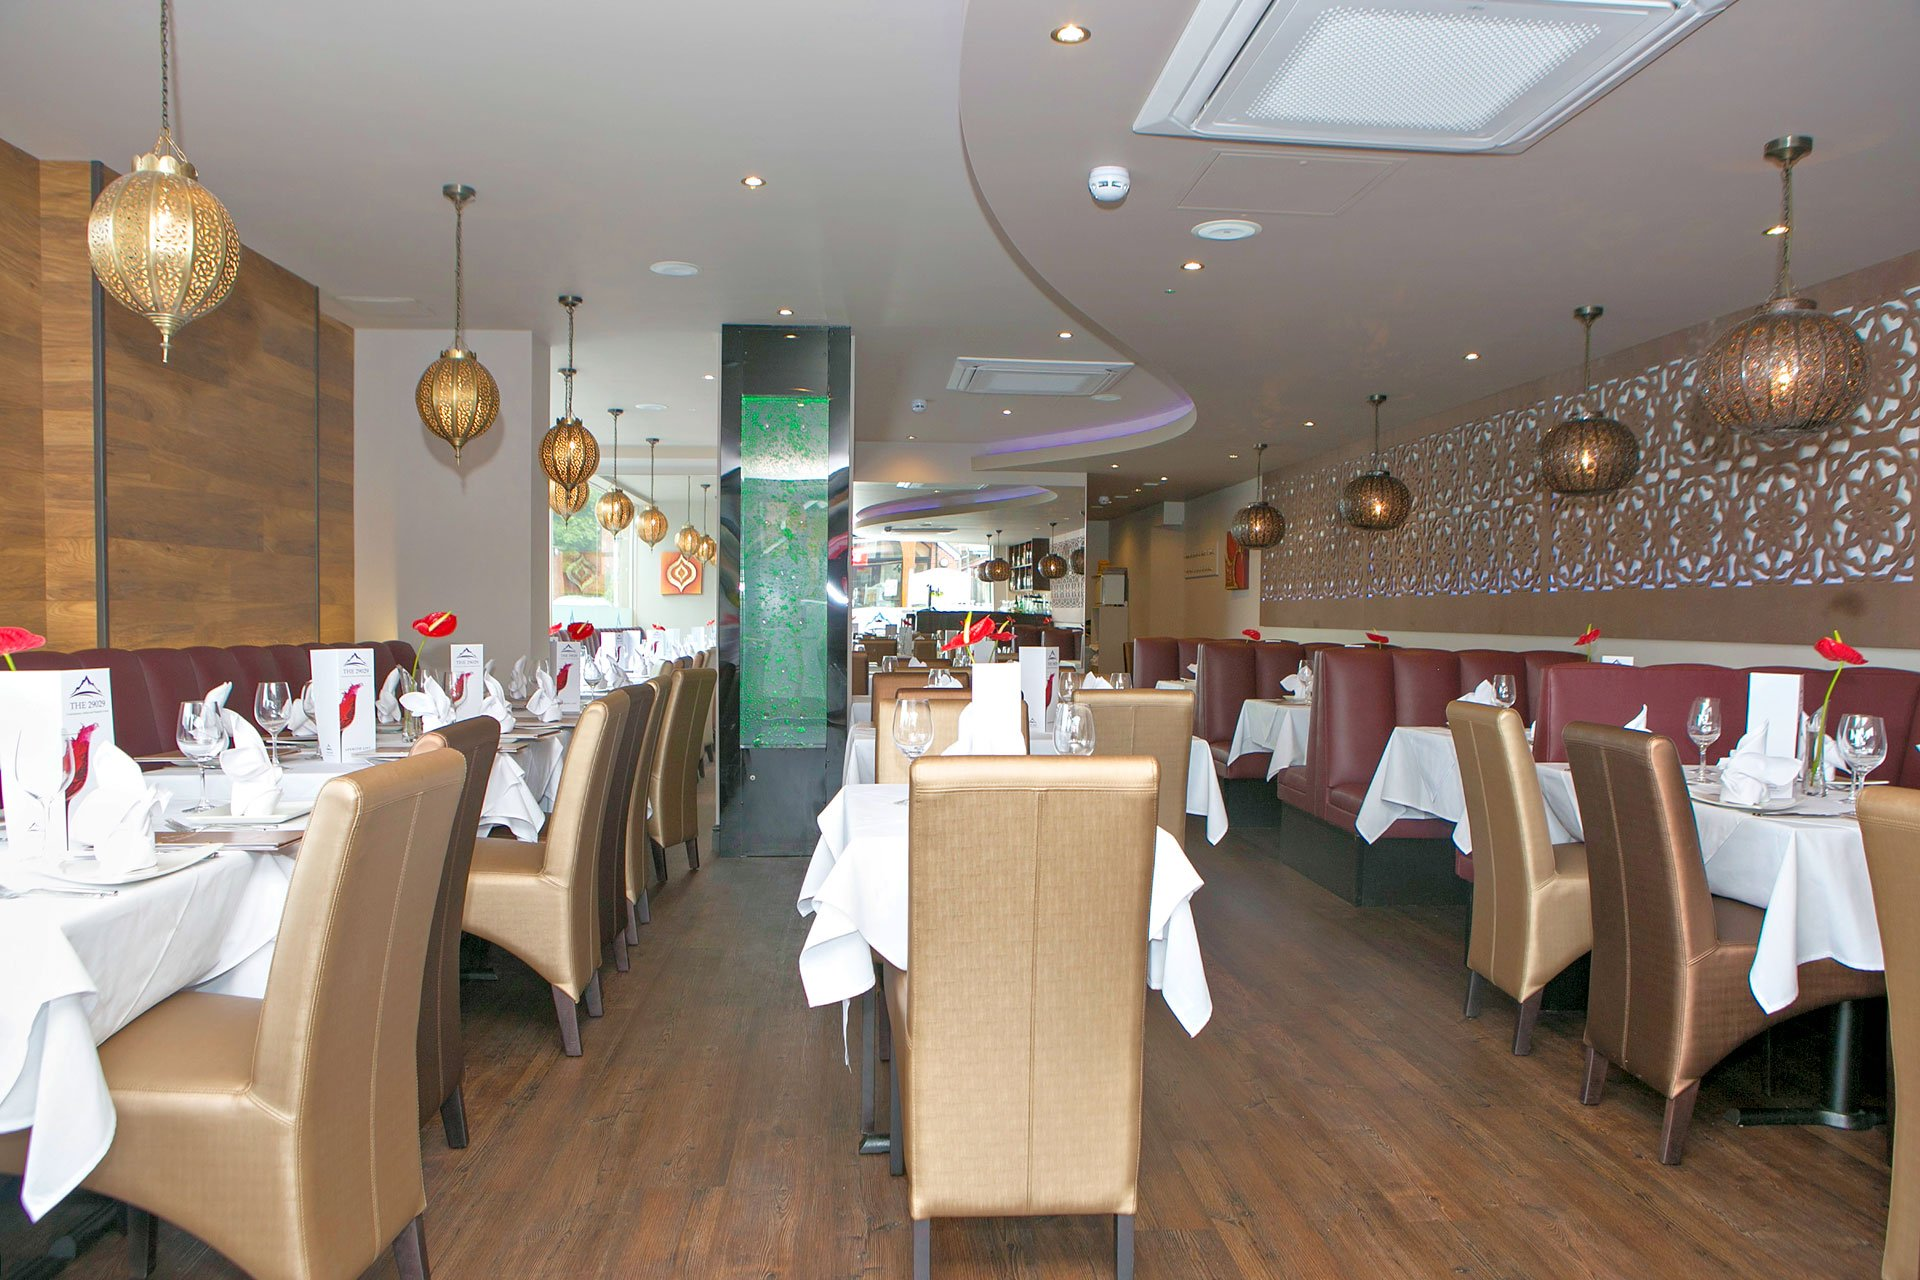 Lunch - The 29029 Restaurant - Indian Restaurant in Poole Broadstone